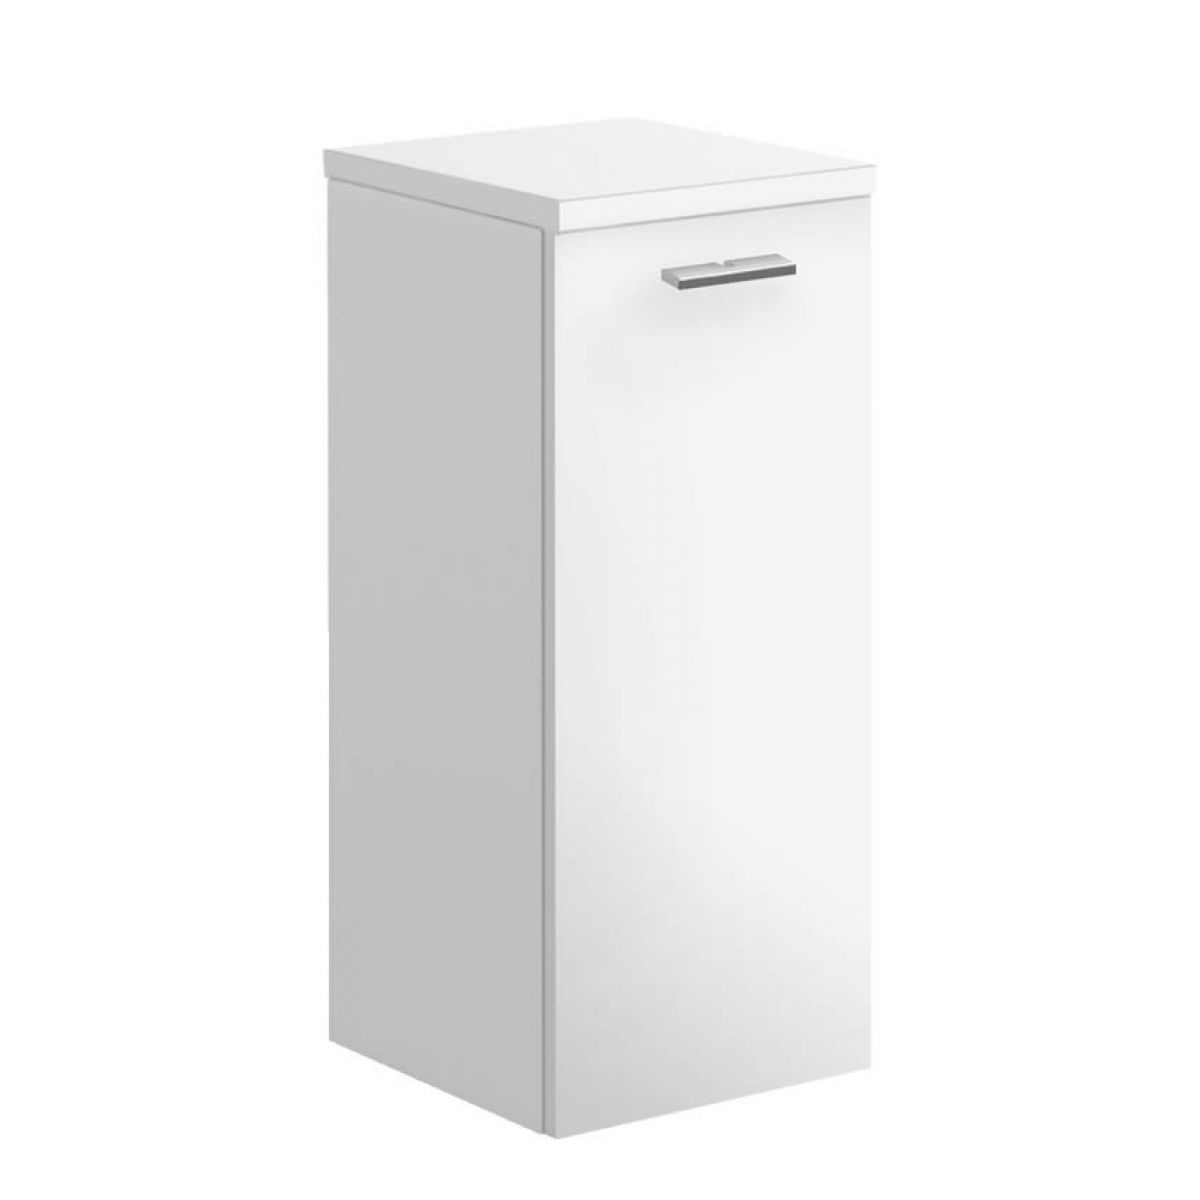 villeroy boch central line laundry cabinet 9710 uk bathrooms